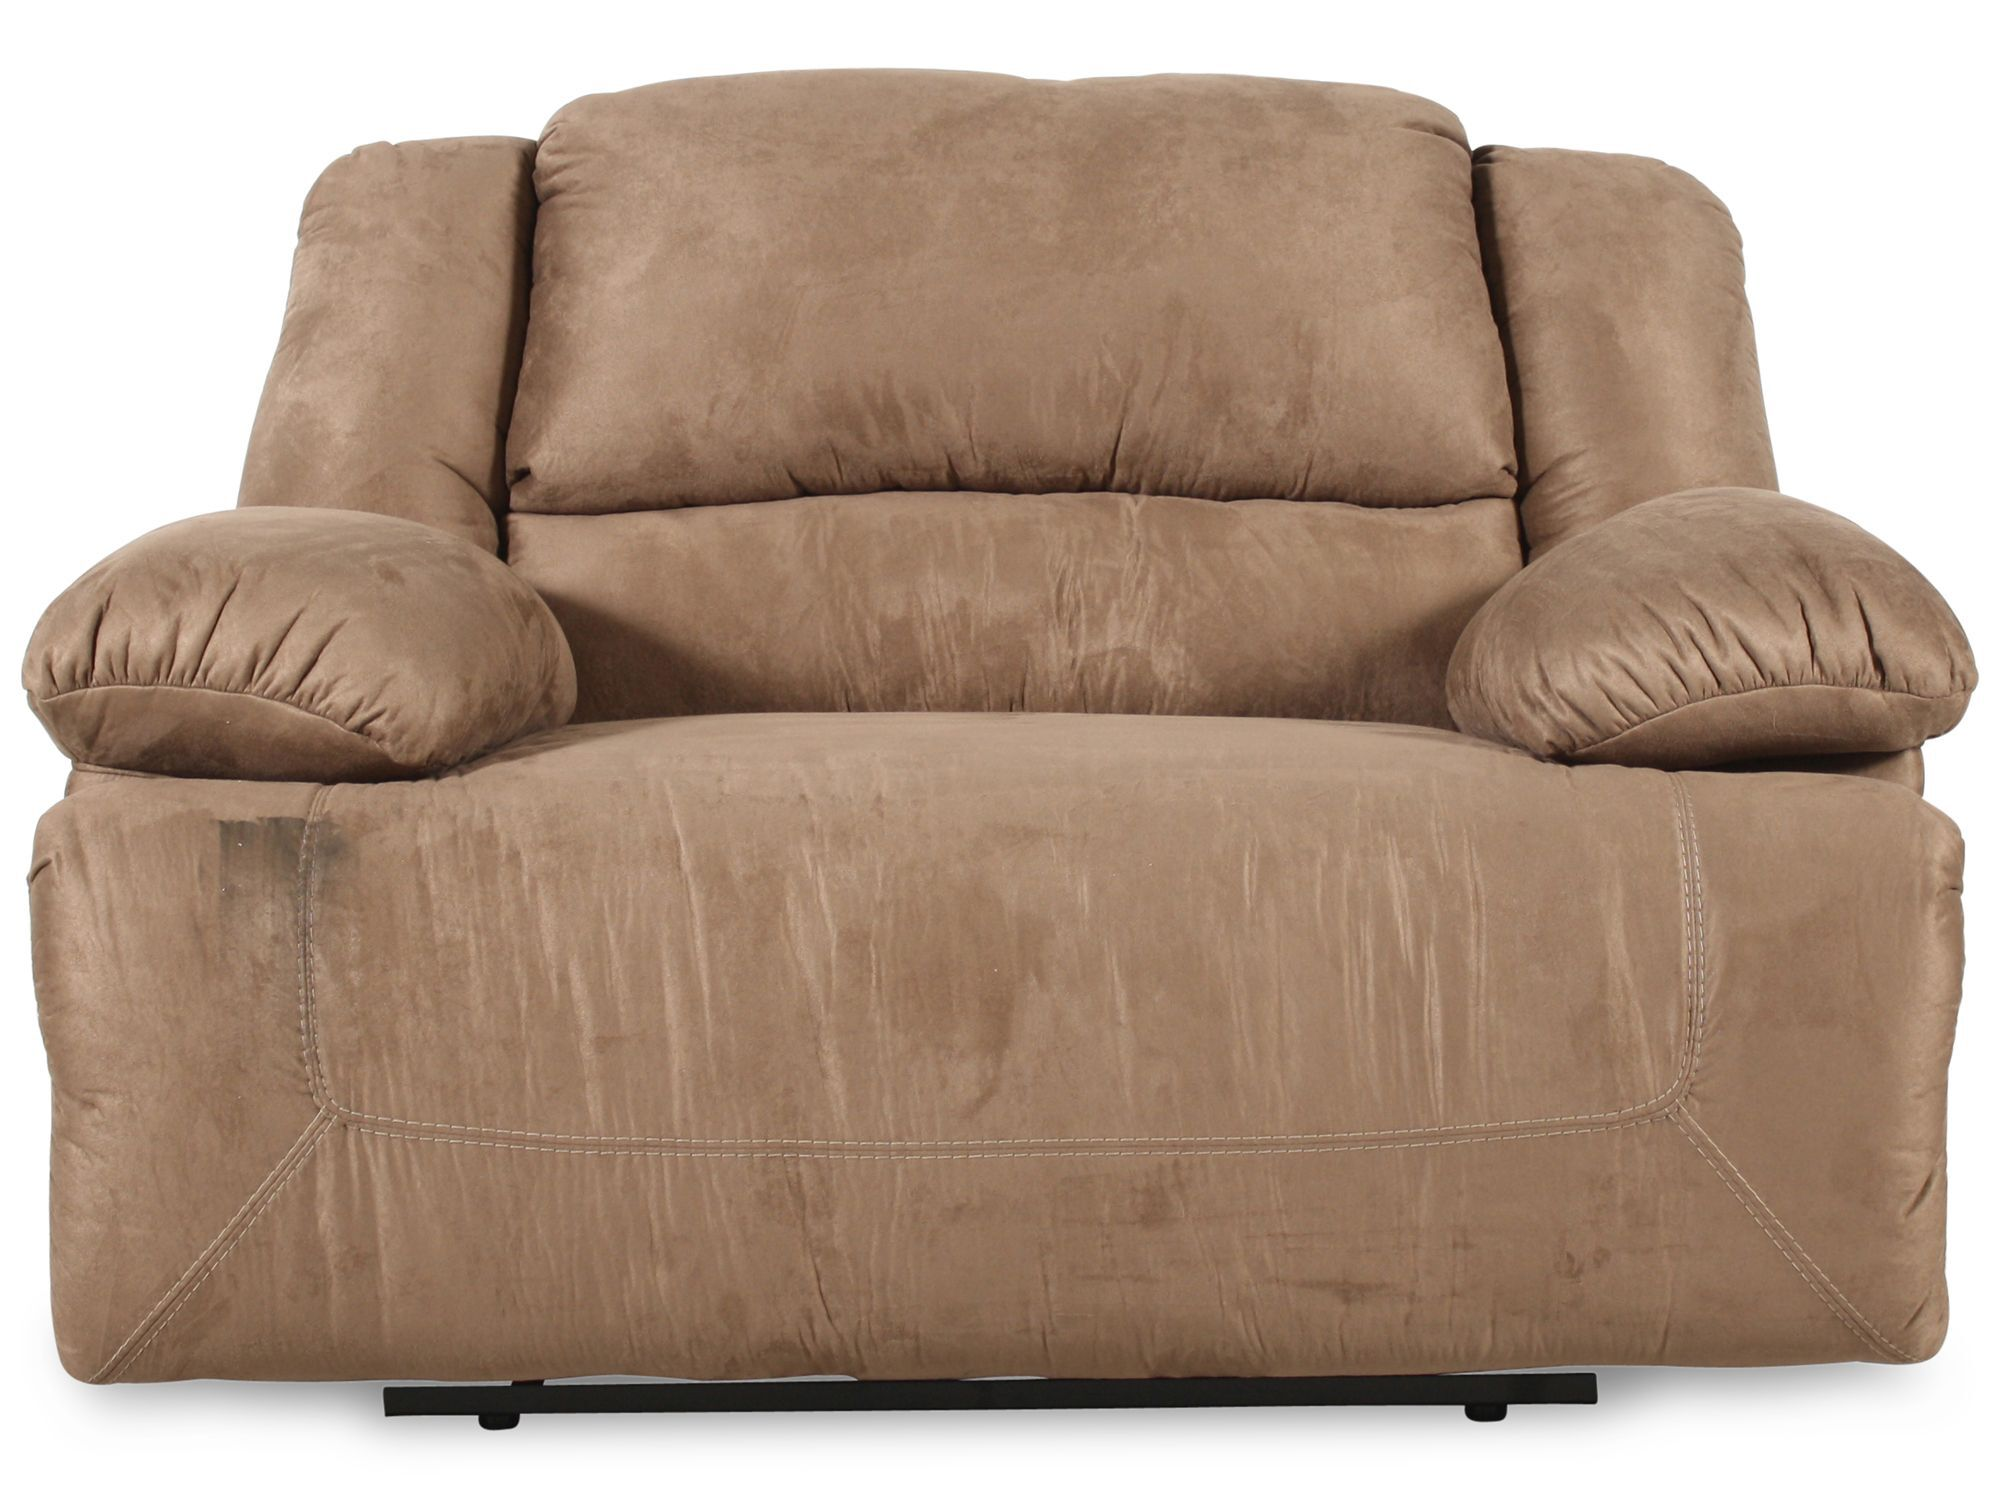 Ashley Hogan Mocha Oversized Recliner  sc 1 st  Mathis Brothers & Oversized Recliner | Mathis Brothers islam-shia.org